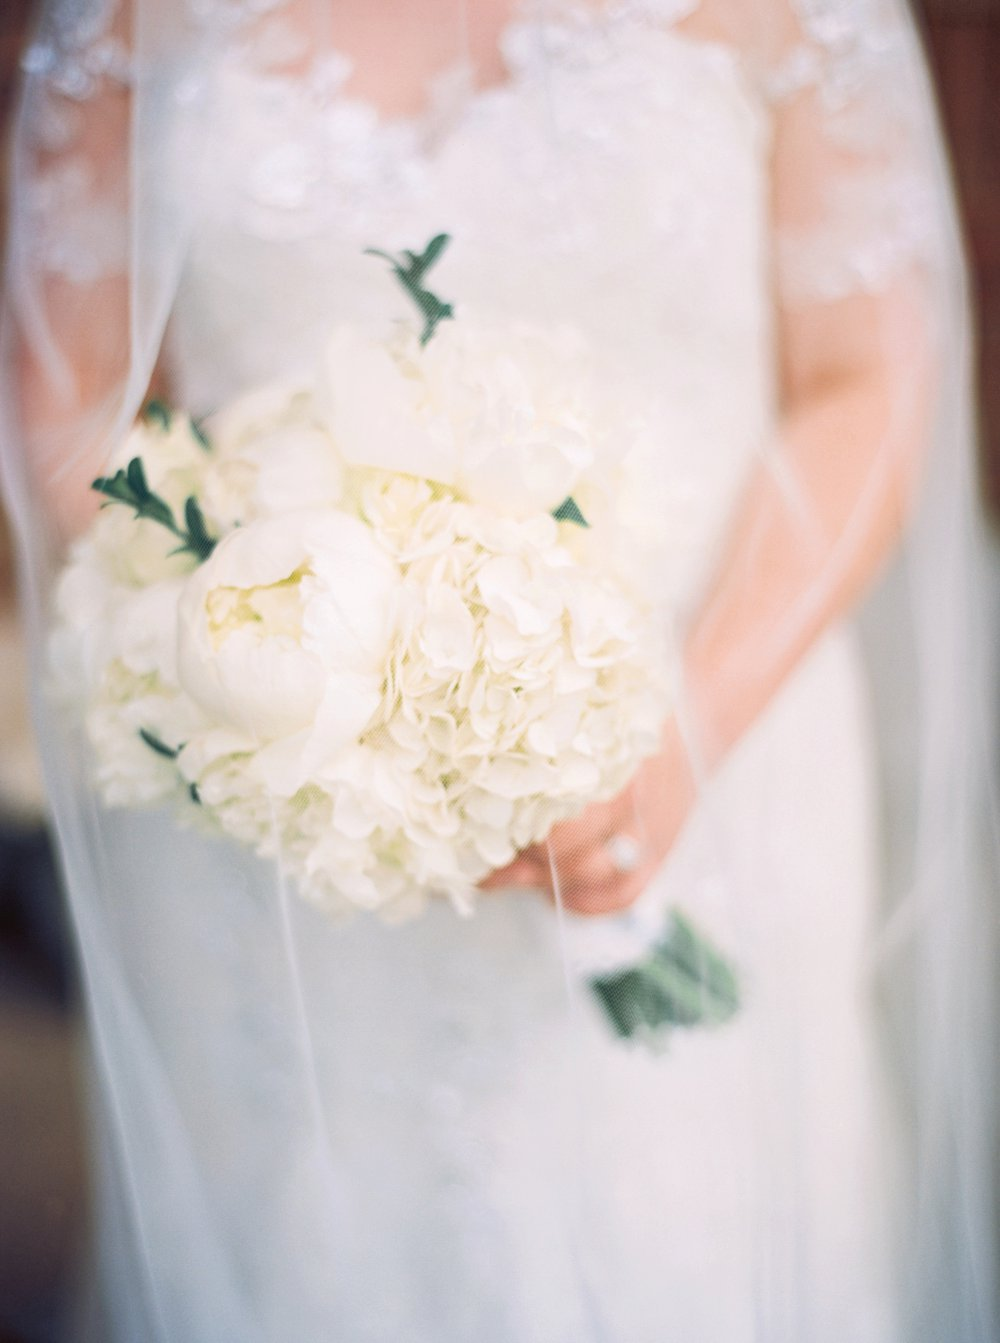 Love this shot of the veil covering the floral bouquet.